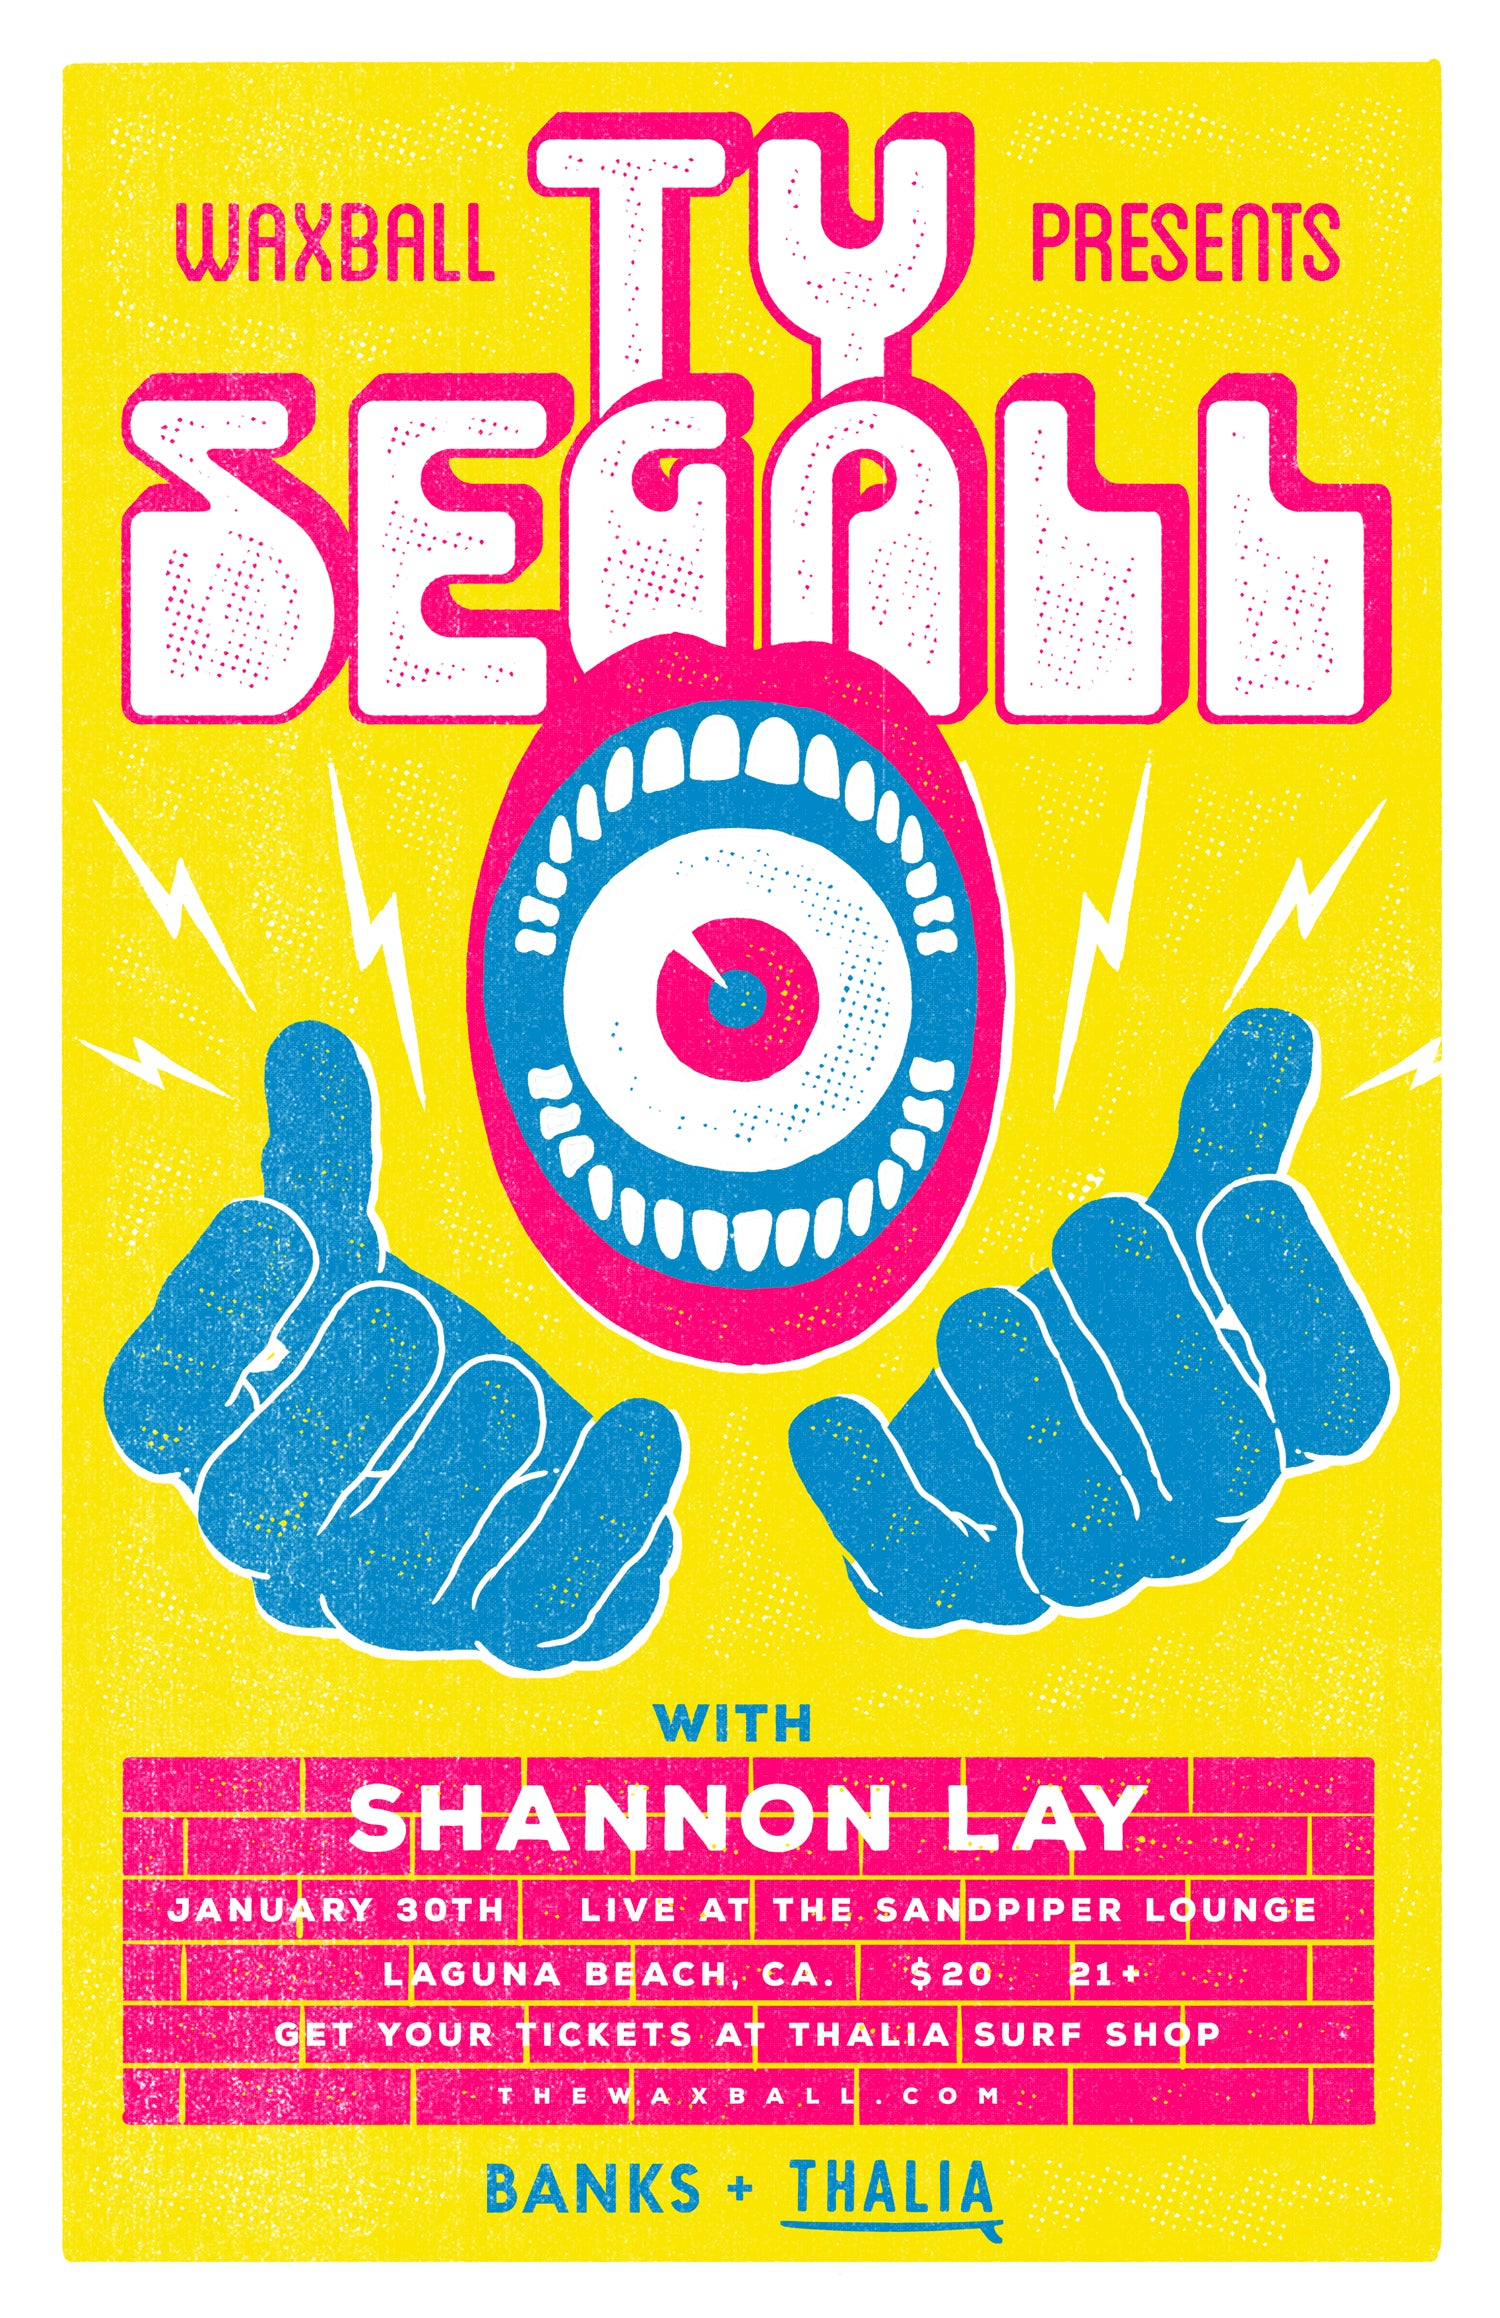 The WaxBall Presents Ty Segall and Shannon Lay. Sponsored by Banks Journal and Thalia Surf Shop